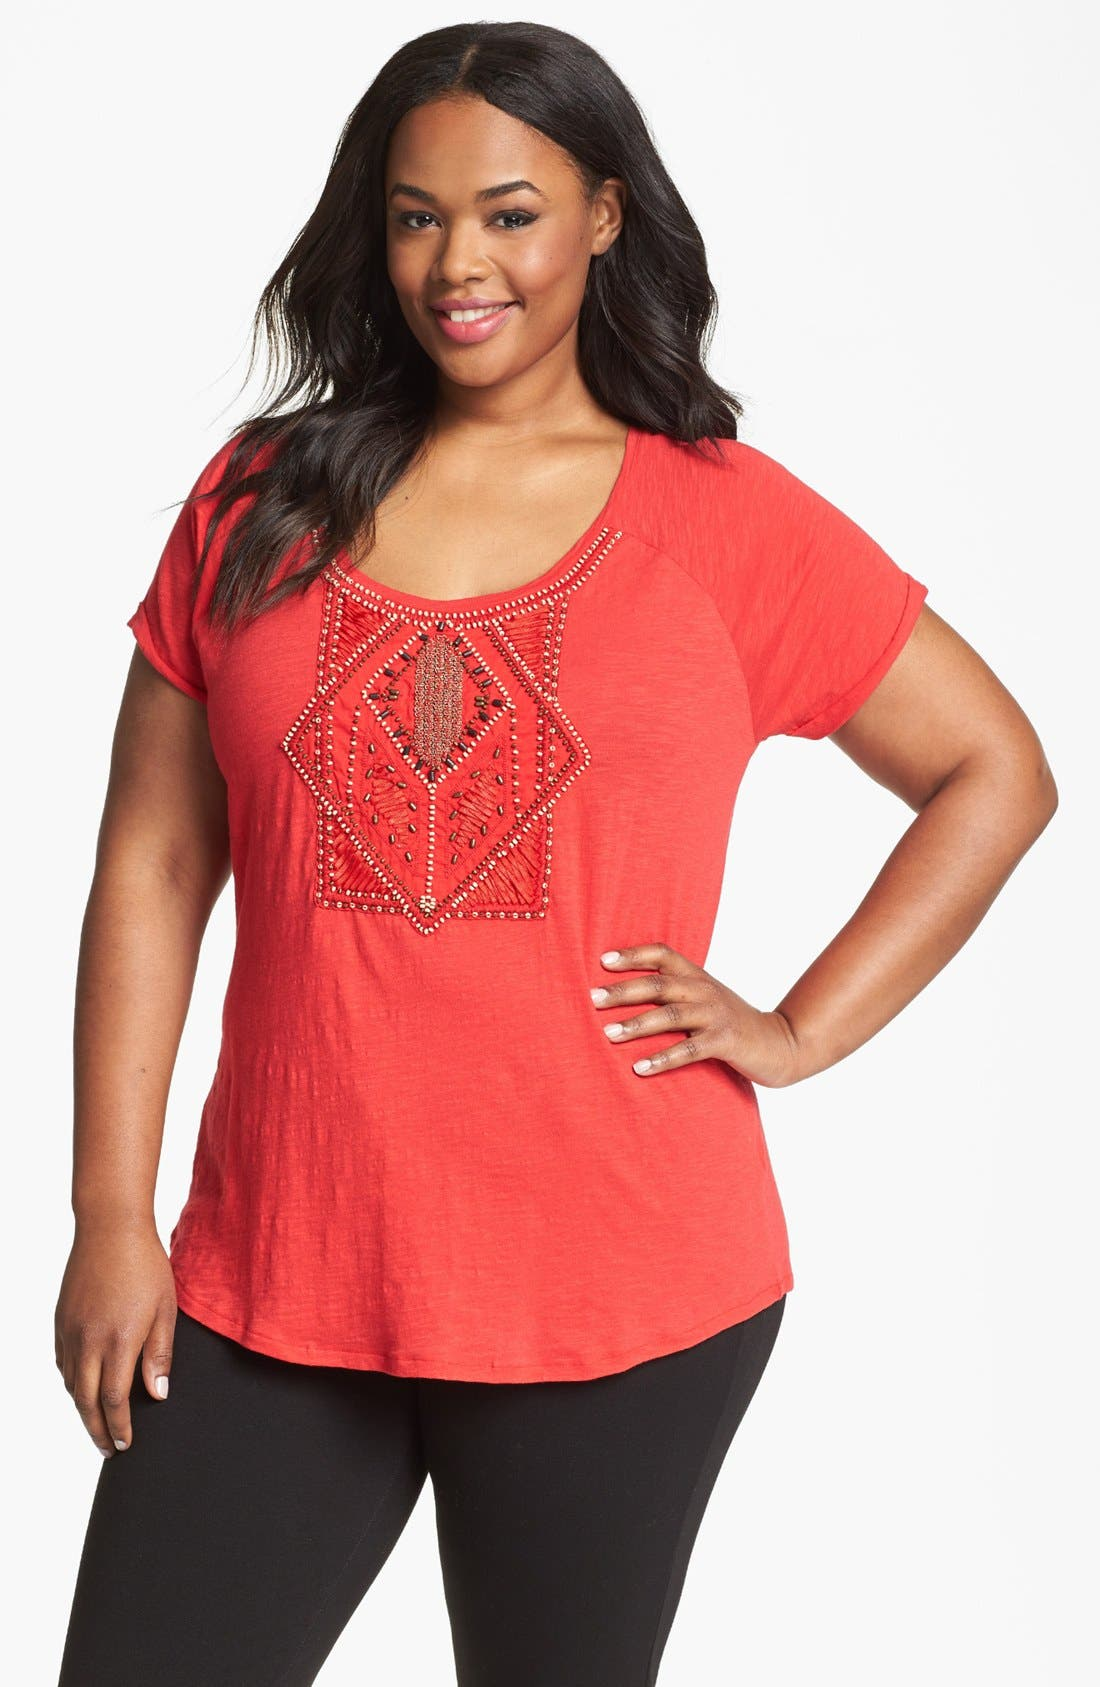 Alternate Image 1 Selected - Lucky Brand 'Avani' Embellished Cotton Tee (Plus Size)